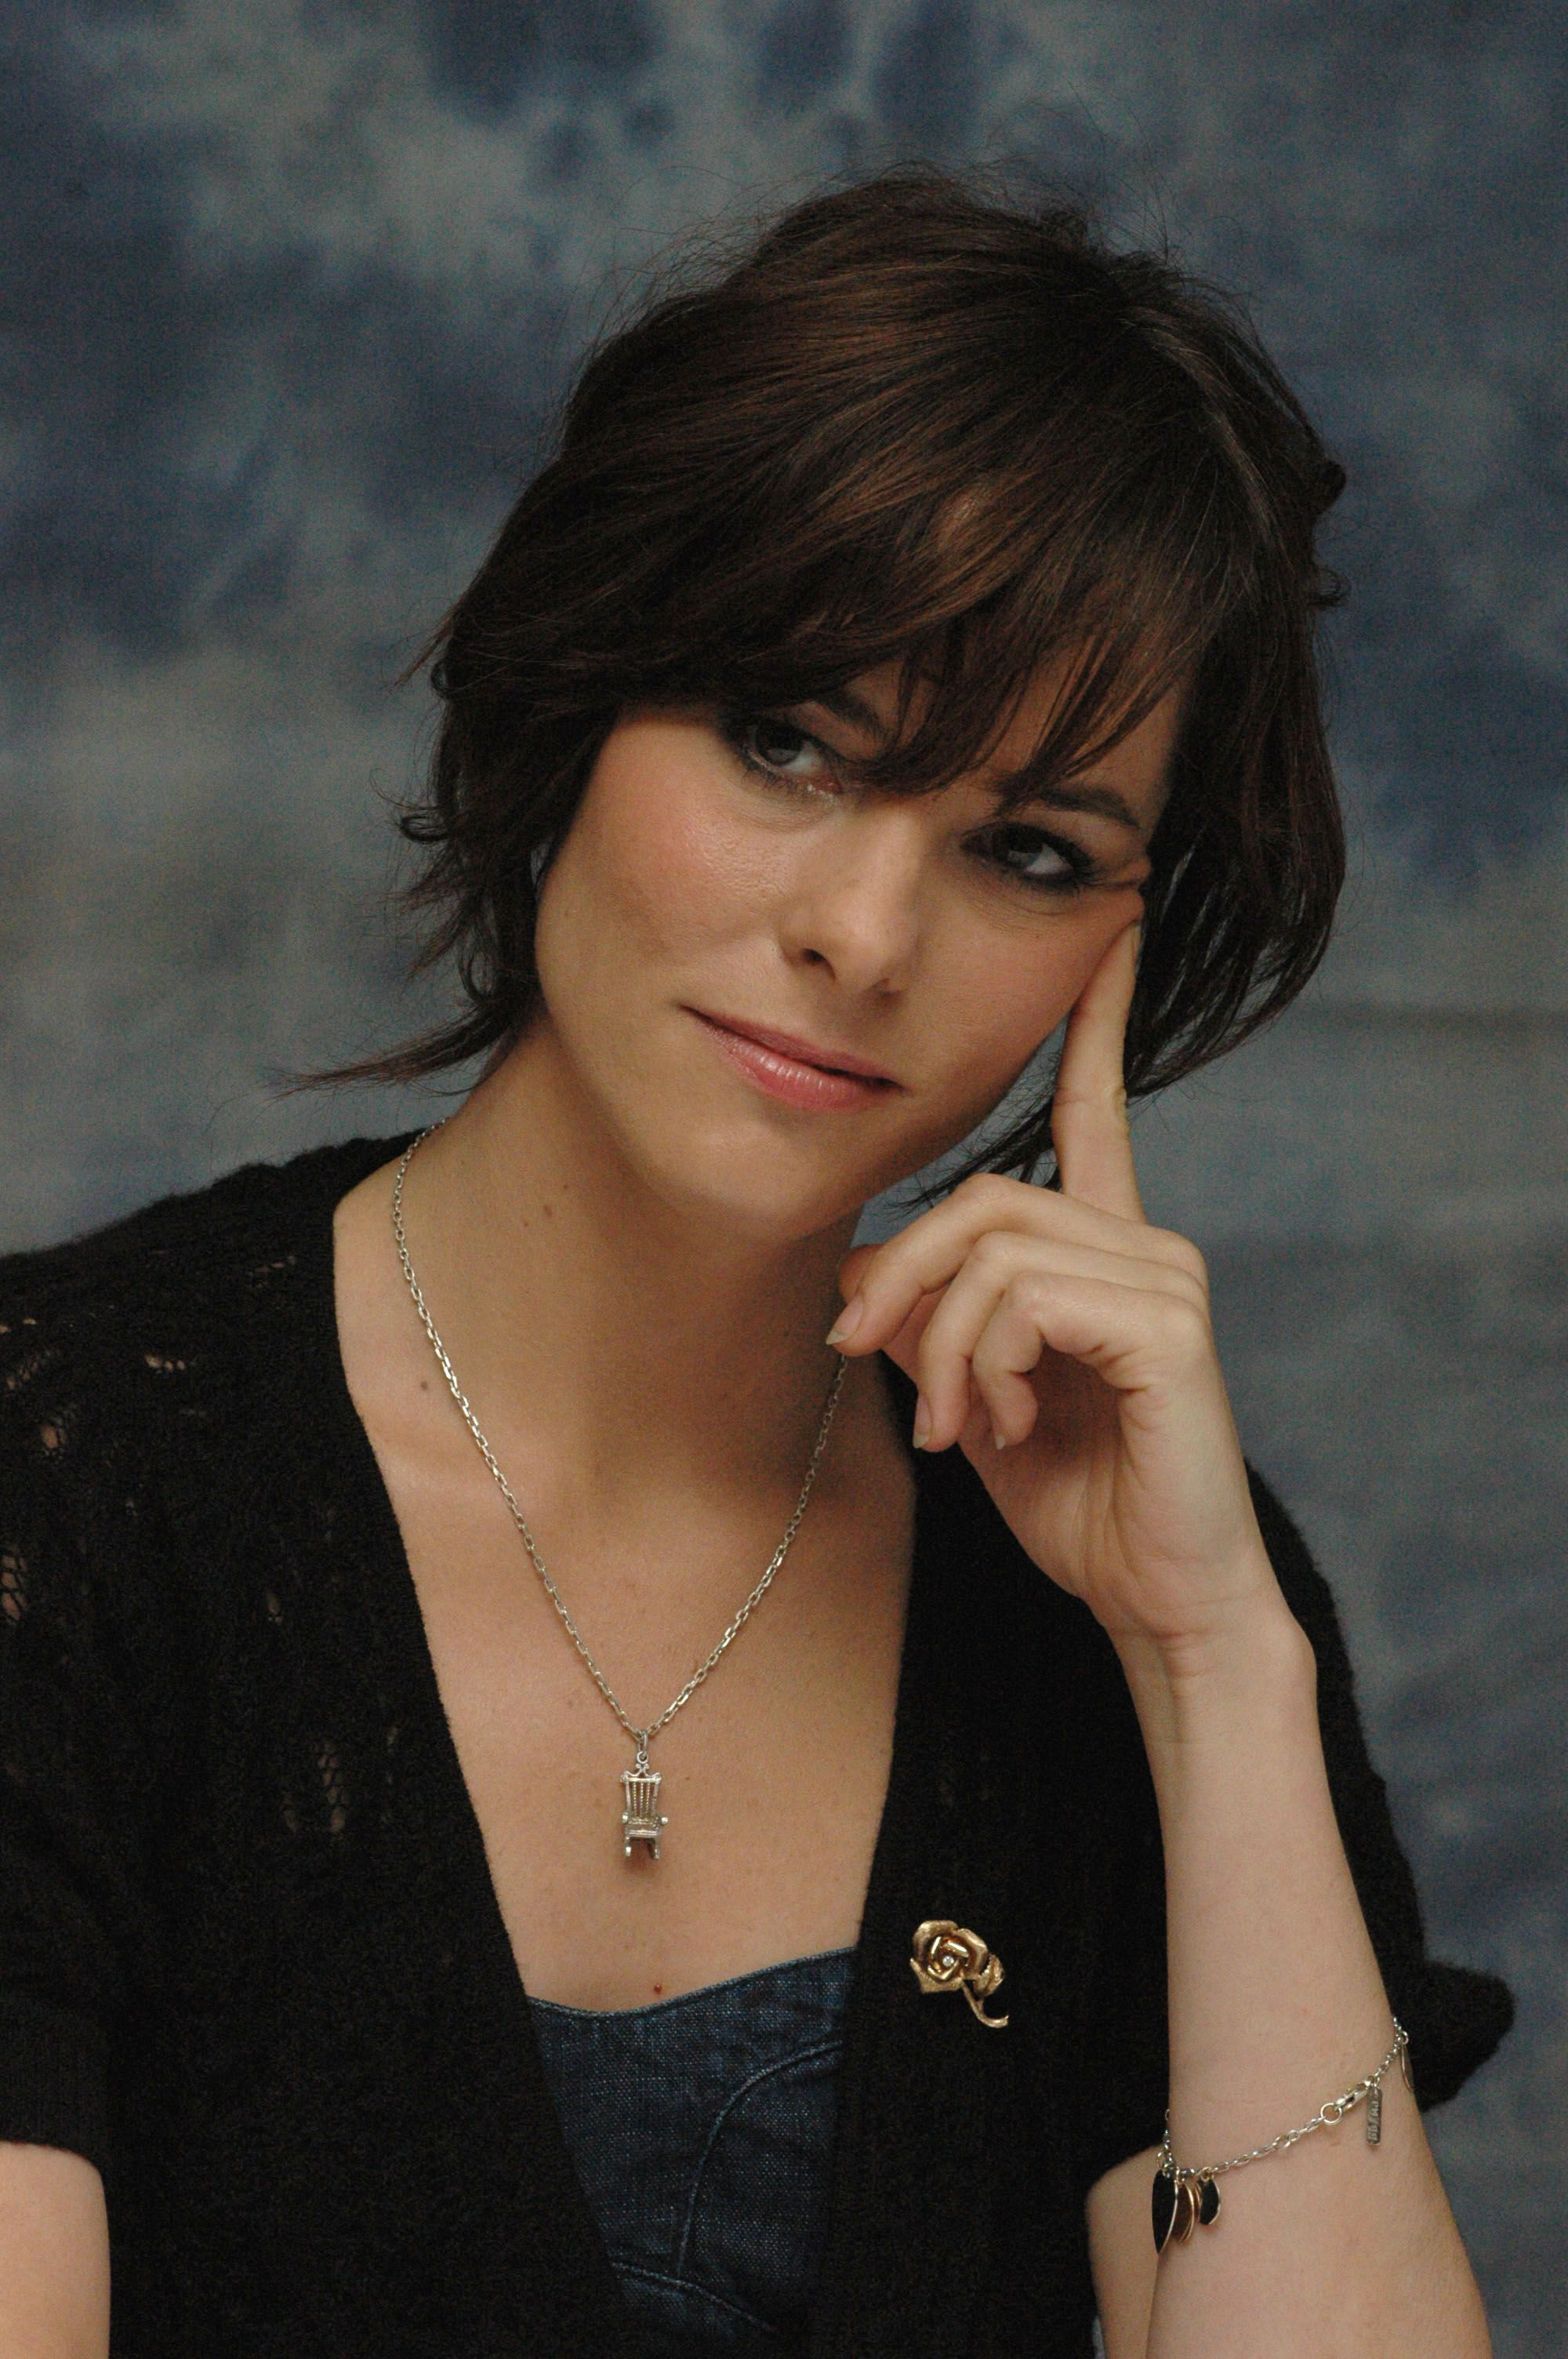 parker posey hd wallpaper hottstuff pinterest parker